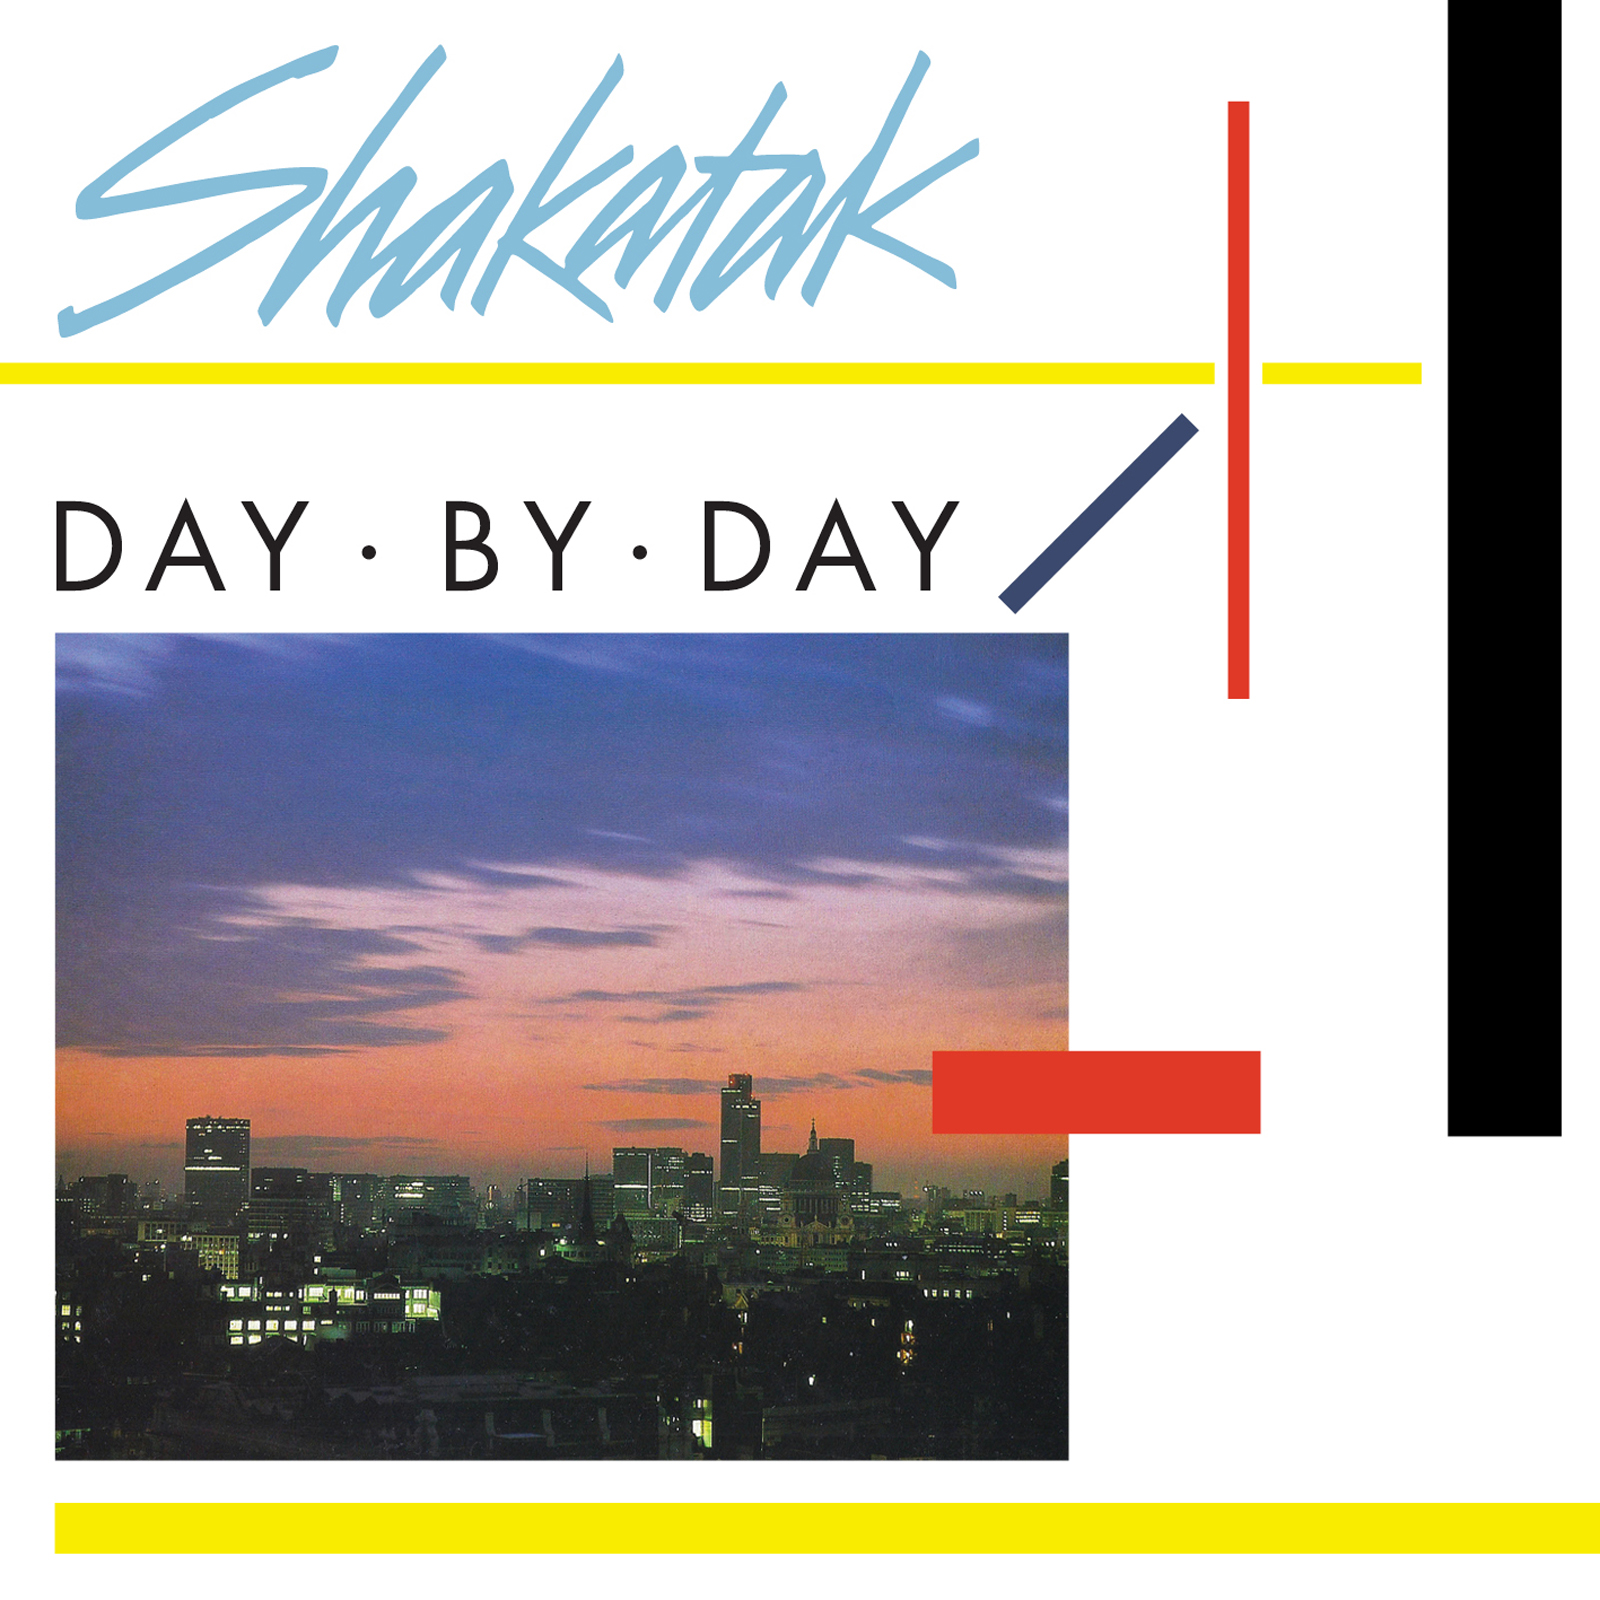 Shakatak Day By Day